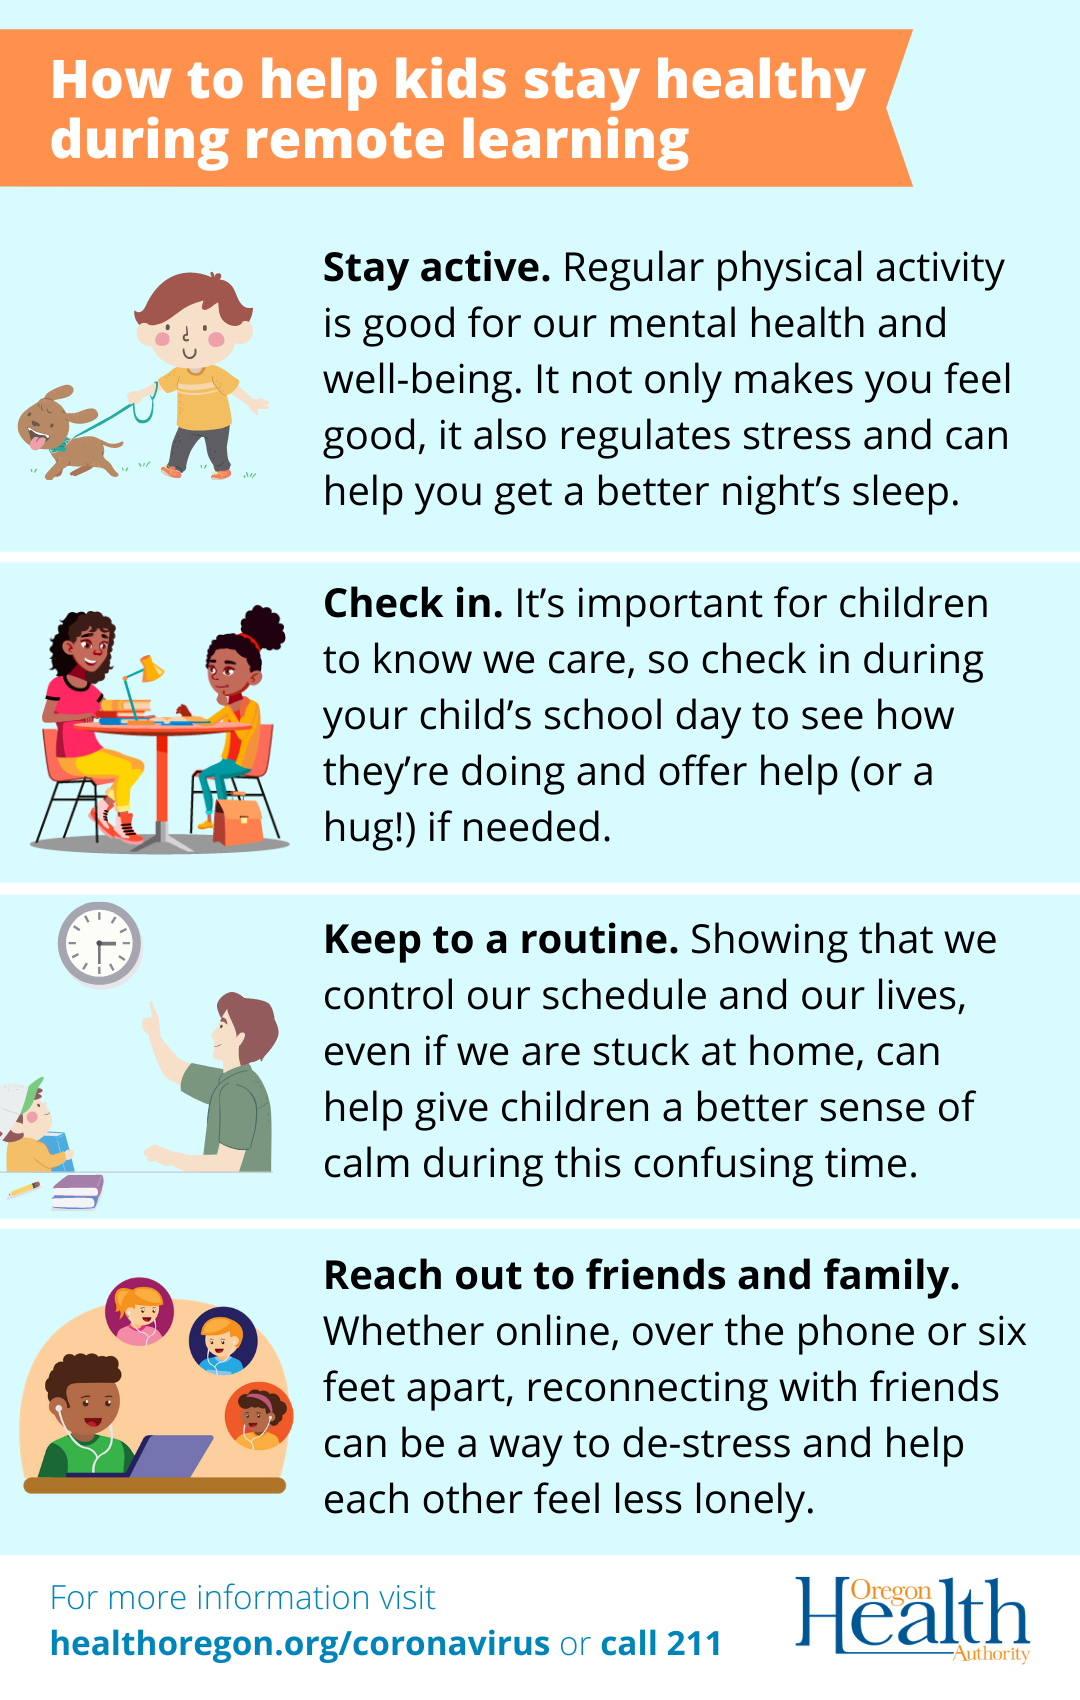 Check in during the school day to see offer help (or a hug) if needed.